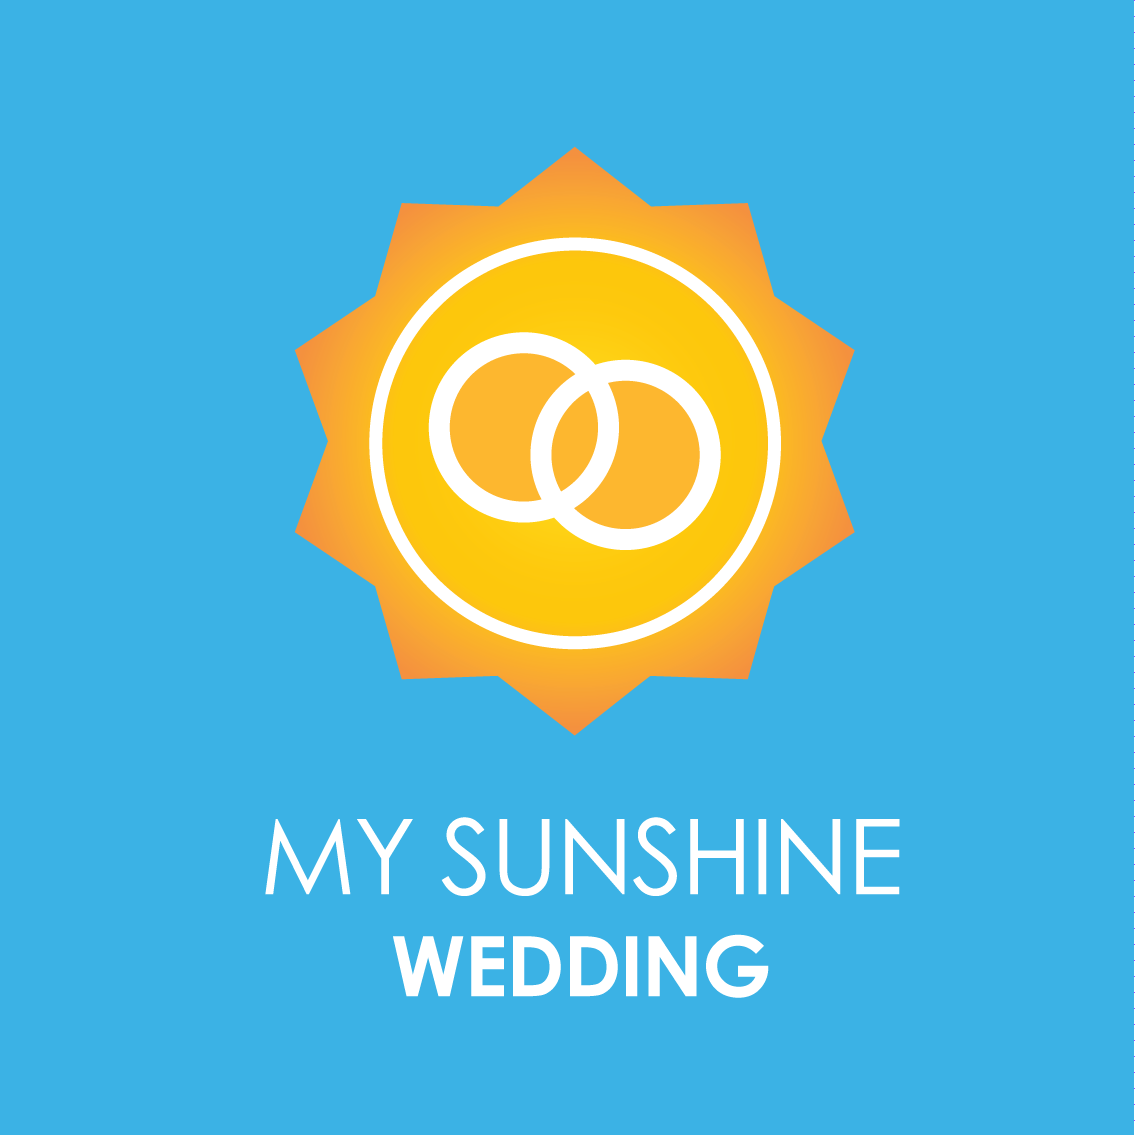 My Sunshine Wedding